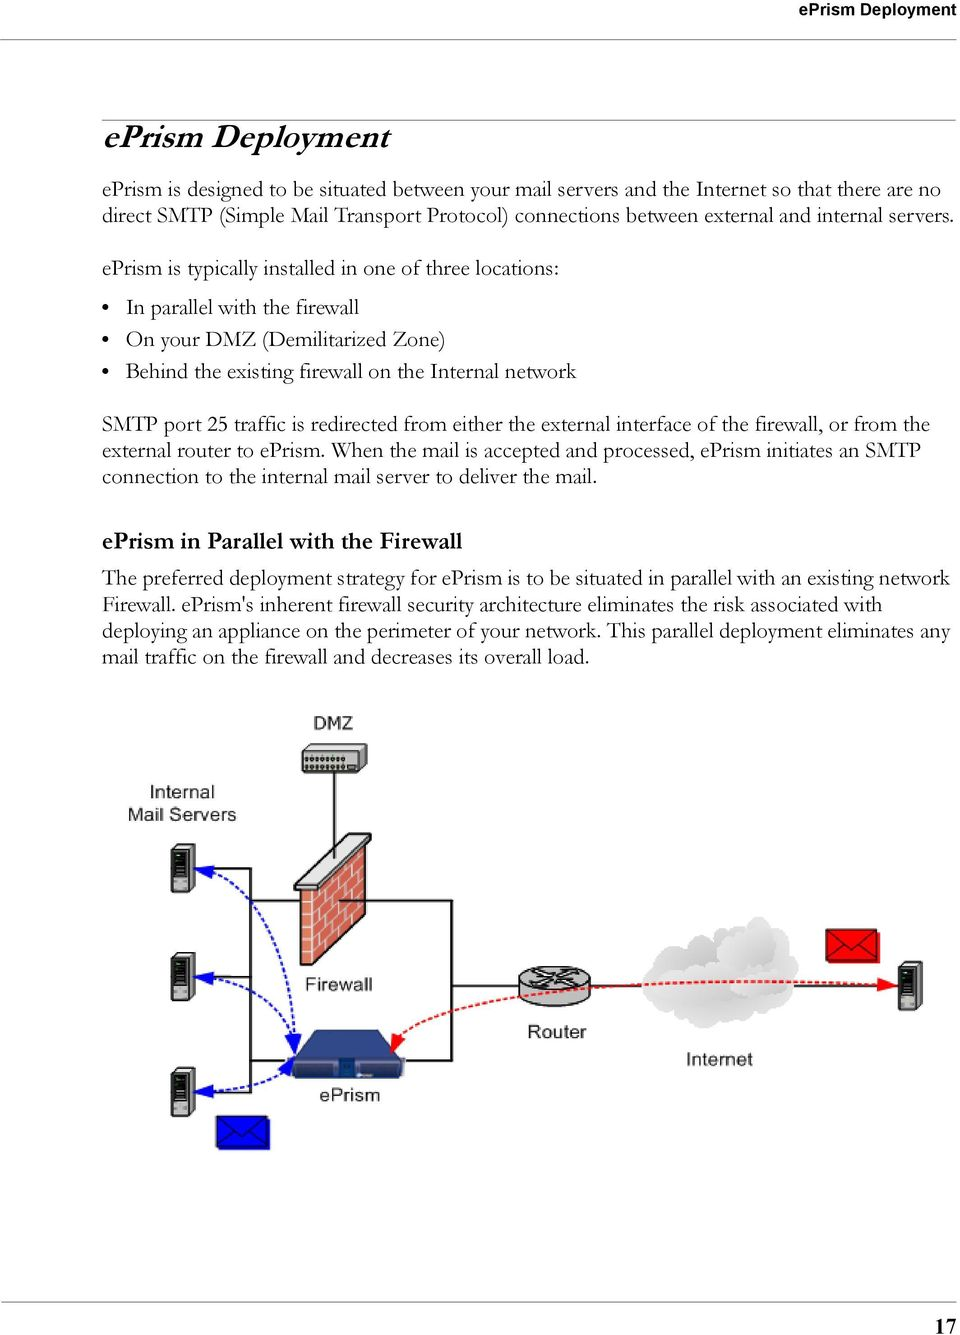 eprism is typically installed in one of three locations: In parallel with the firewall On your DMZ (Demilitarized Zone) Behind the existing firewall on the Internal network SMTP port 25 traffic is